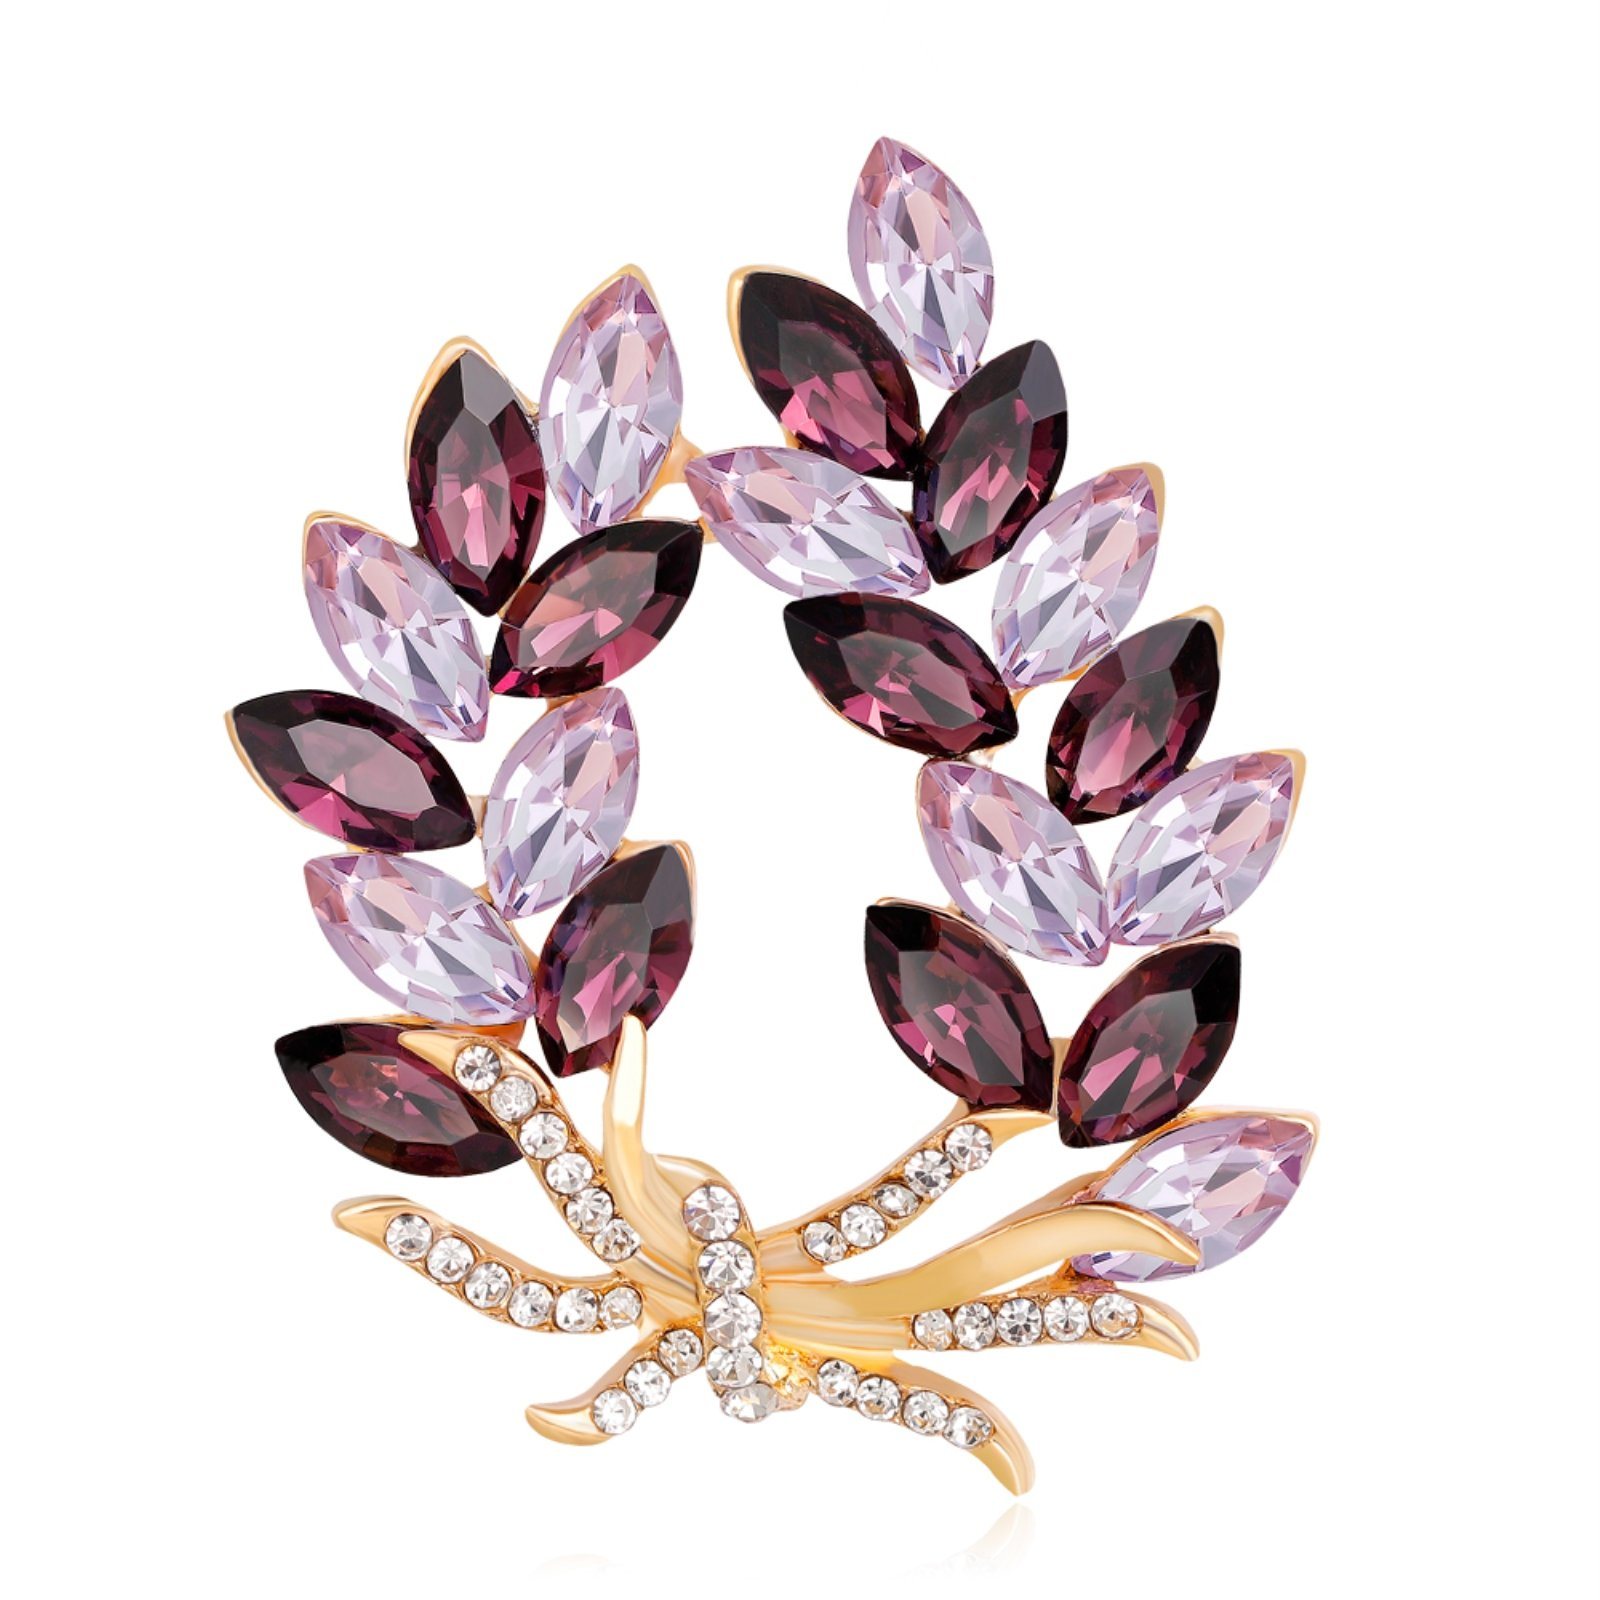 ptk12 Coat Accessories Purple Crystal Flower Casual Party Bouquets Rhinestone Brooch by ptk12 (Image #1)